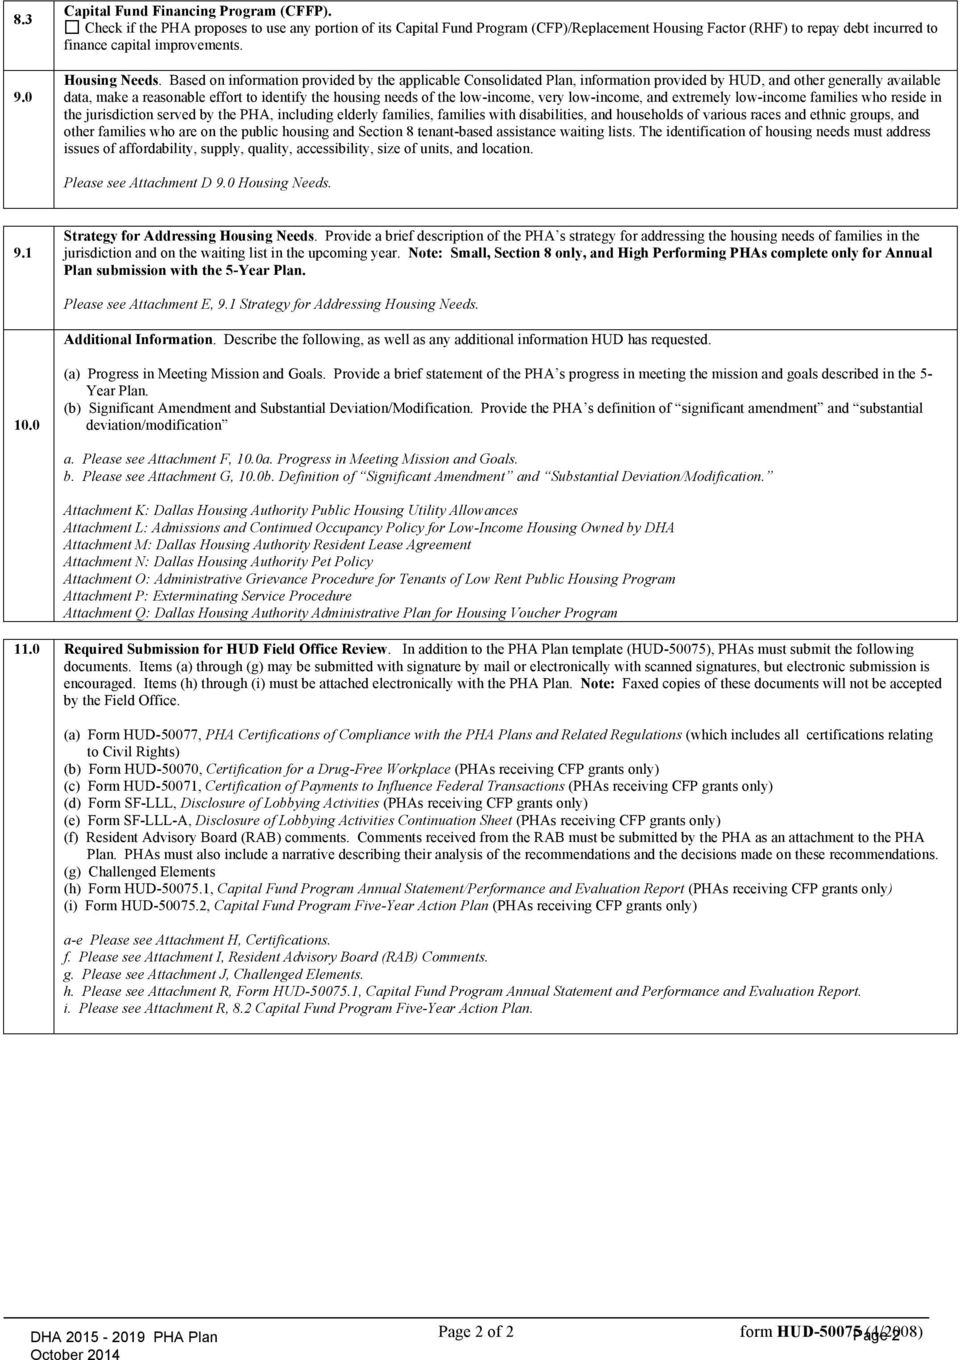 dallas housing authority five year pha plan 2015 pha plan and five rh docplayer net